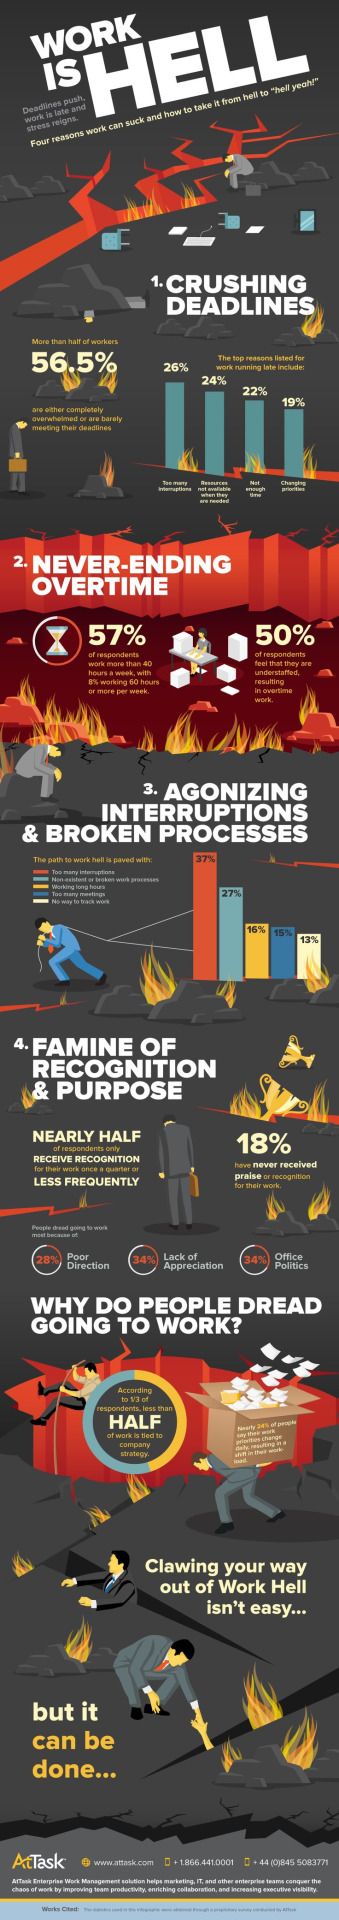 Work can be Hell, so what are some root causes of dissatisfaction among #American workers?  http://www.pinterest.com/pin/160159330473170981/  | #Infographic #Infografia   http://click-to-read-mo.re/p/7JkS/53413f12